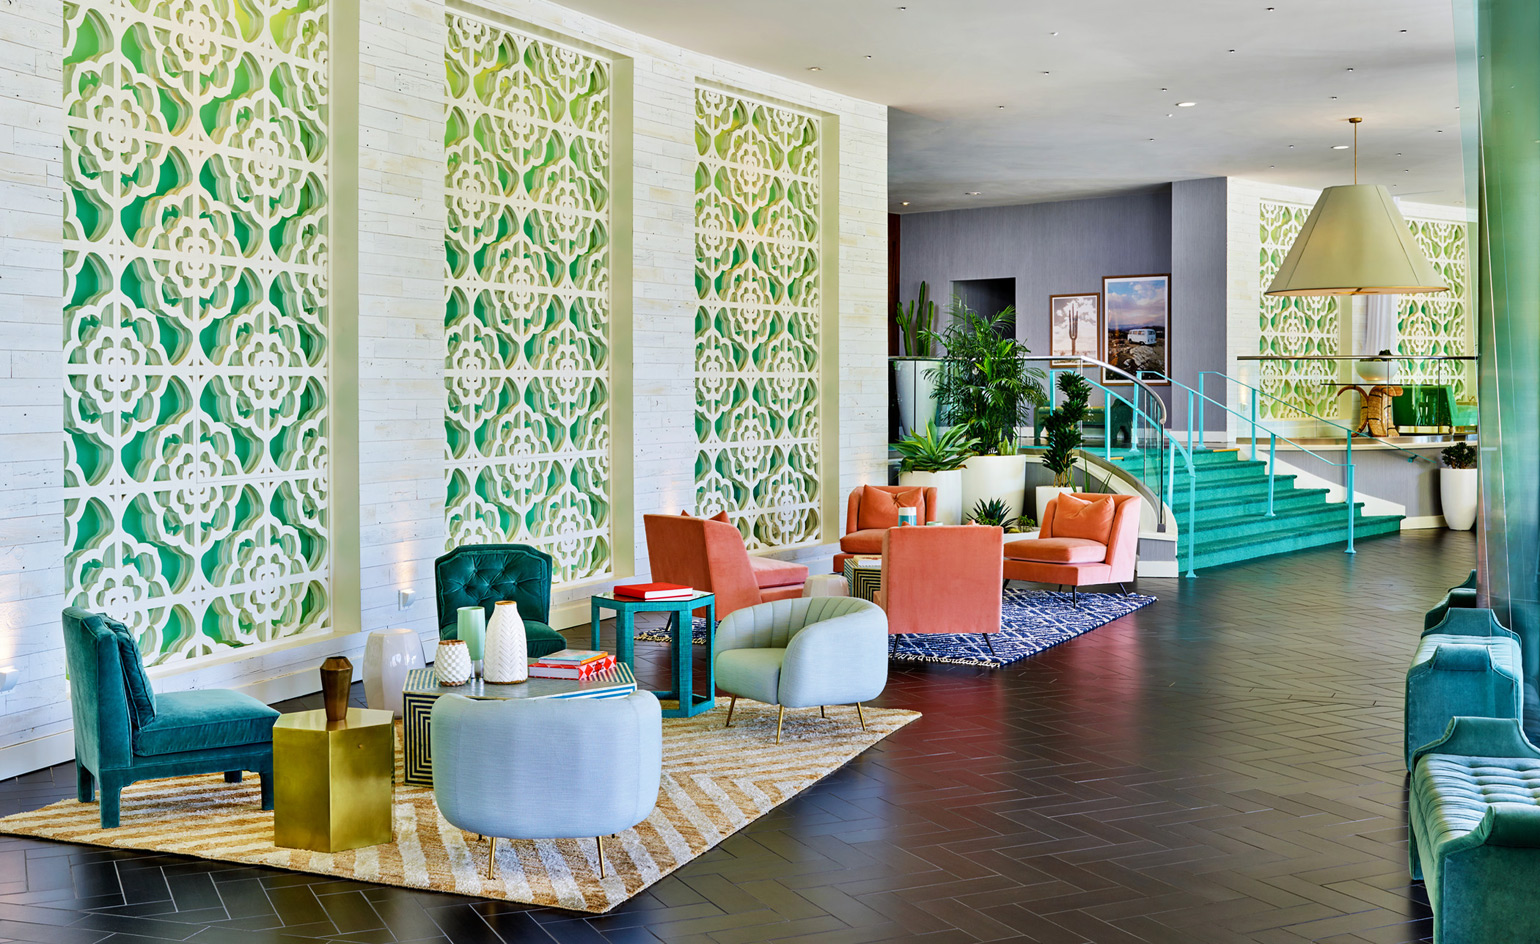 The 7 best palm springs hotels for 2018 wallpaper for Palm springs strip hotels